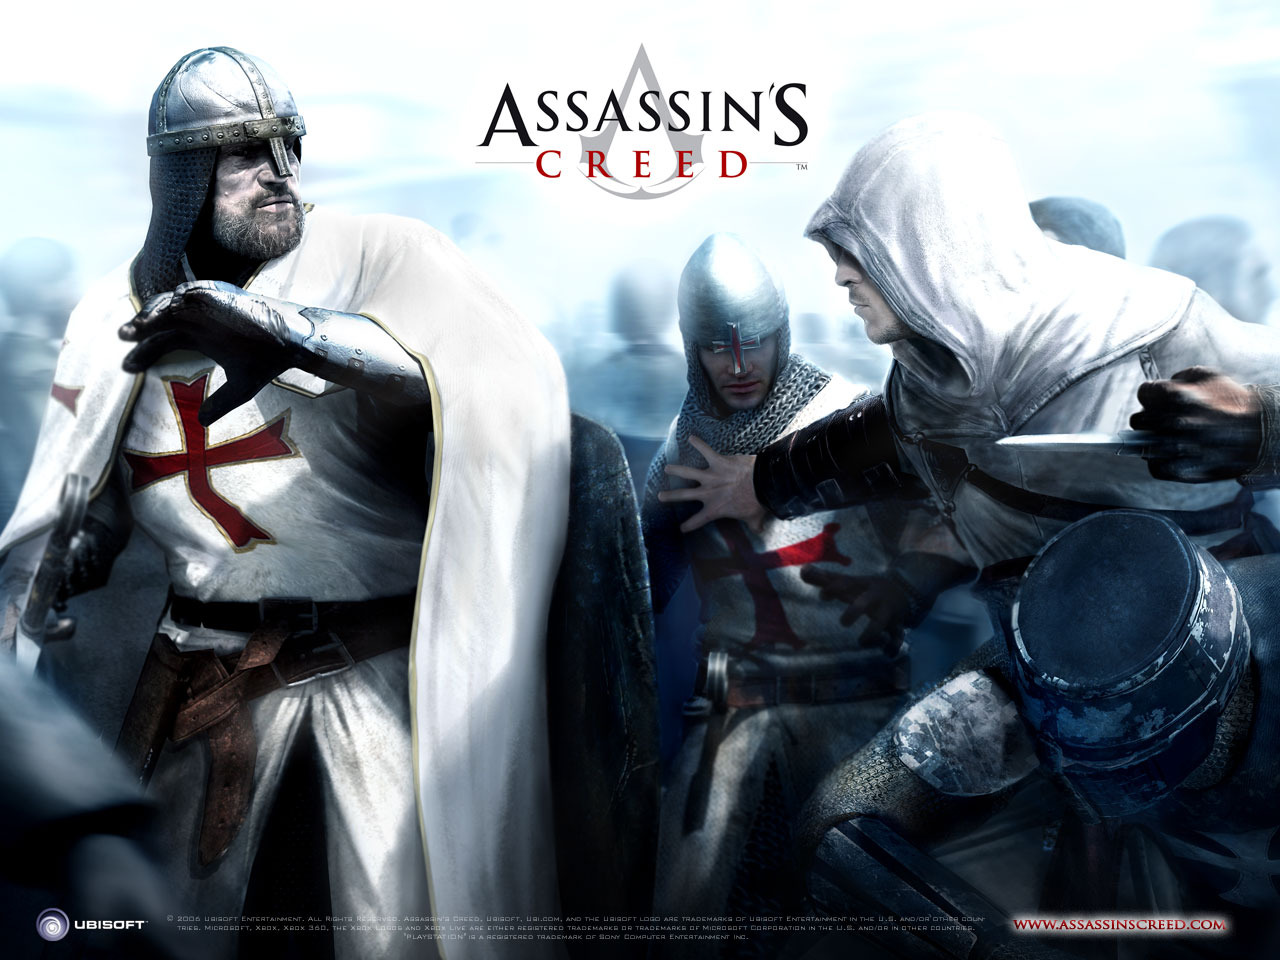 http://3.bp.blogspot.com/-Am6M3vxJH6c/T7jrMfw3a3I/AAAAAAAAAWY/eHOzw_XzGZo/s1600/assassin-s-creed-pc-1306246760-416.jpg